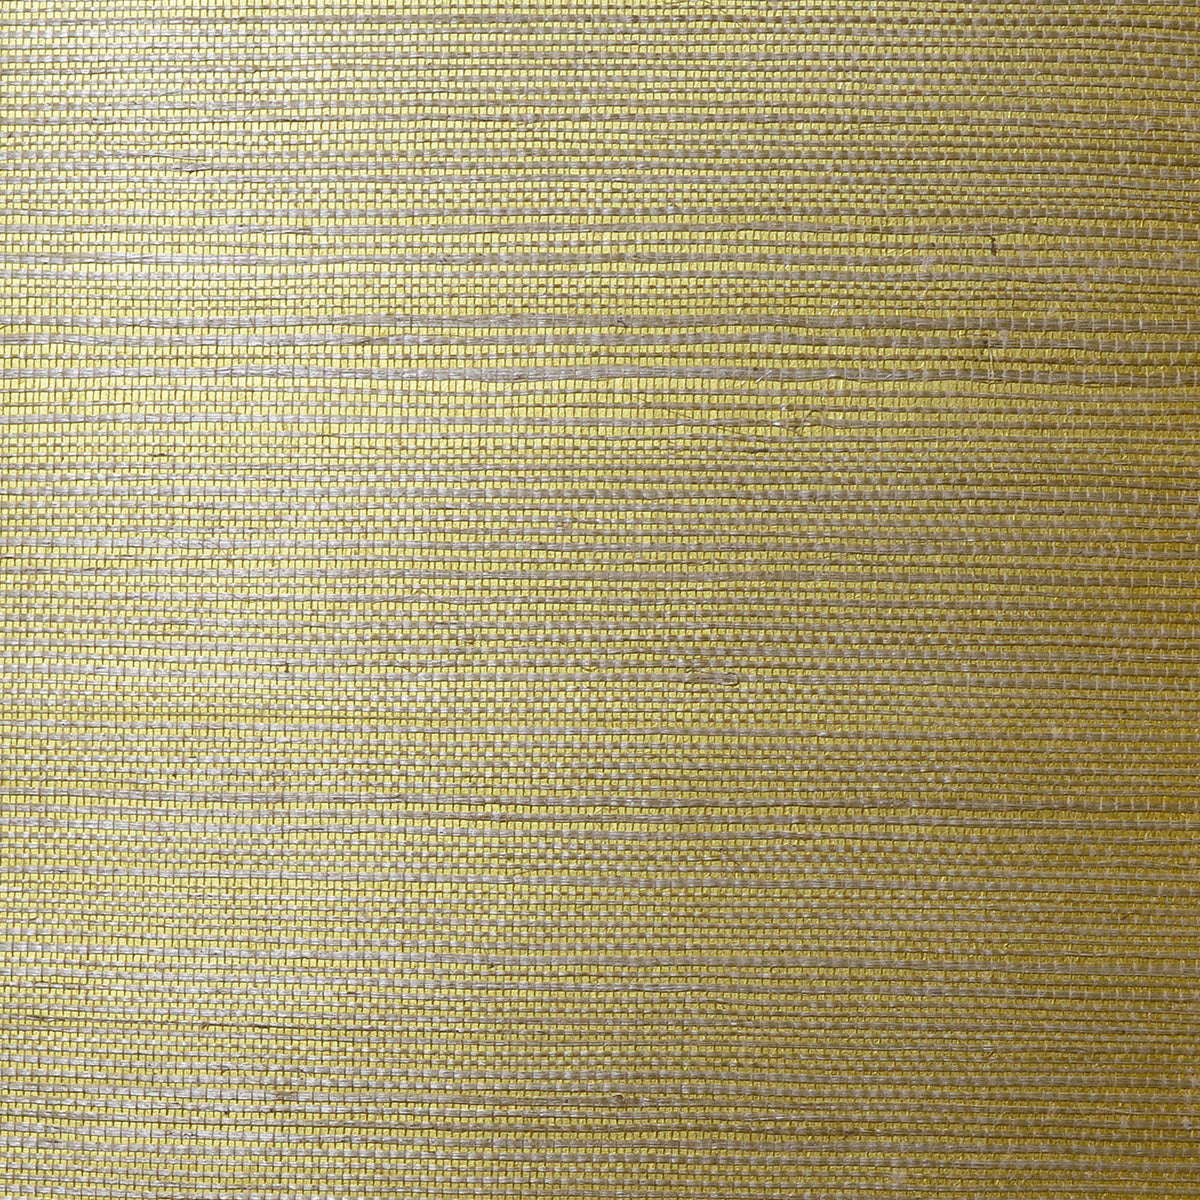 Sample Sisal Grasscloth Wallpaper In Metallic Gold And Aloe From The L Burke Decor